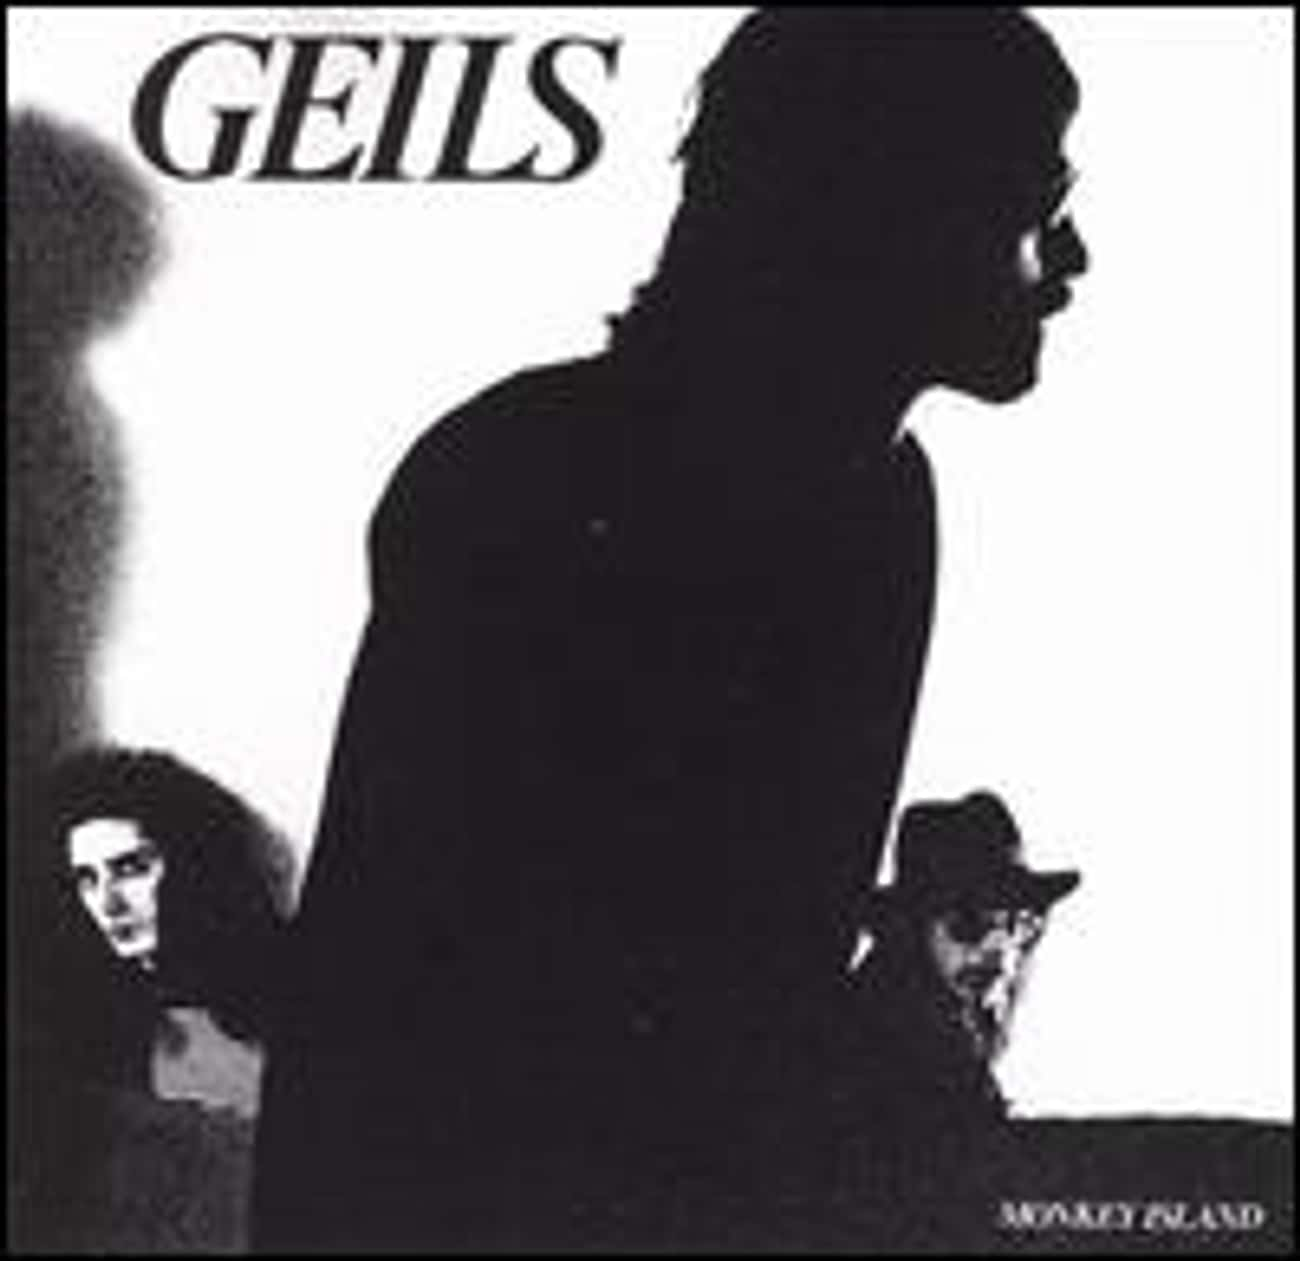 Monkey Island is listed (or ranked) 2 on the list The Best J. Geils Band Albums of All Time